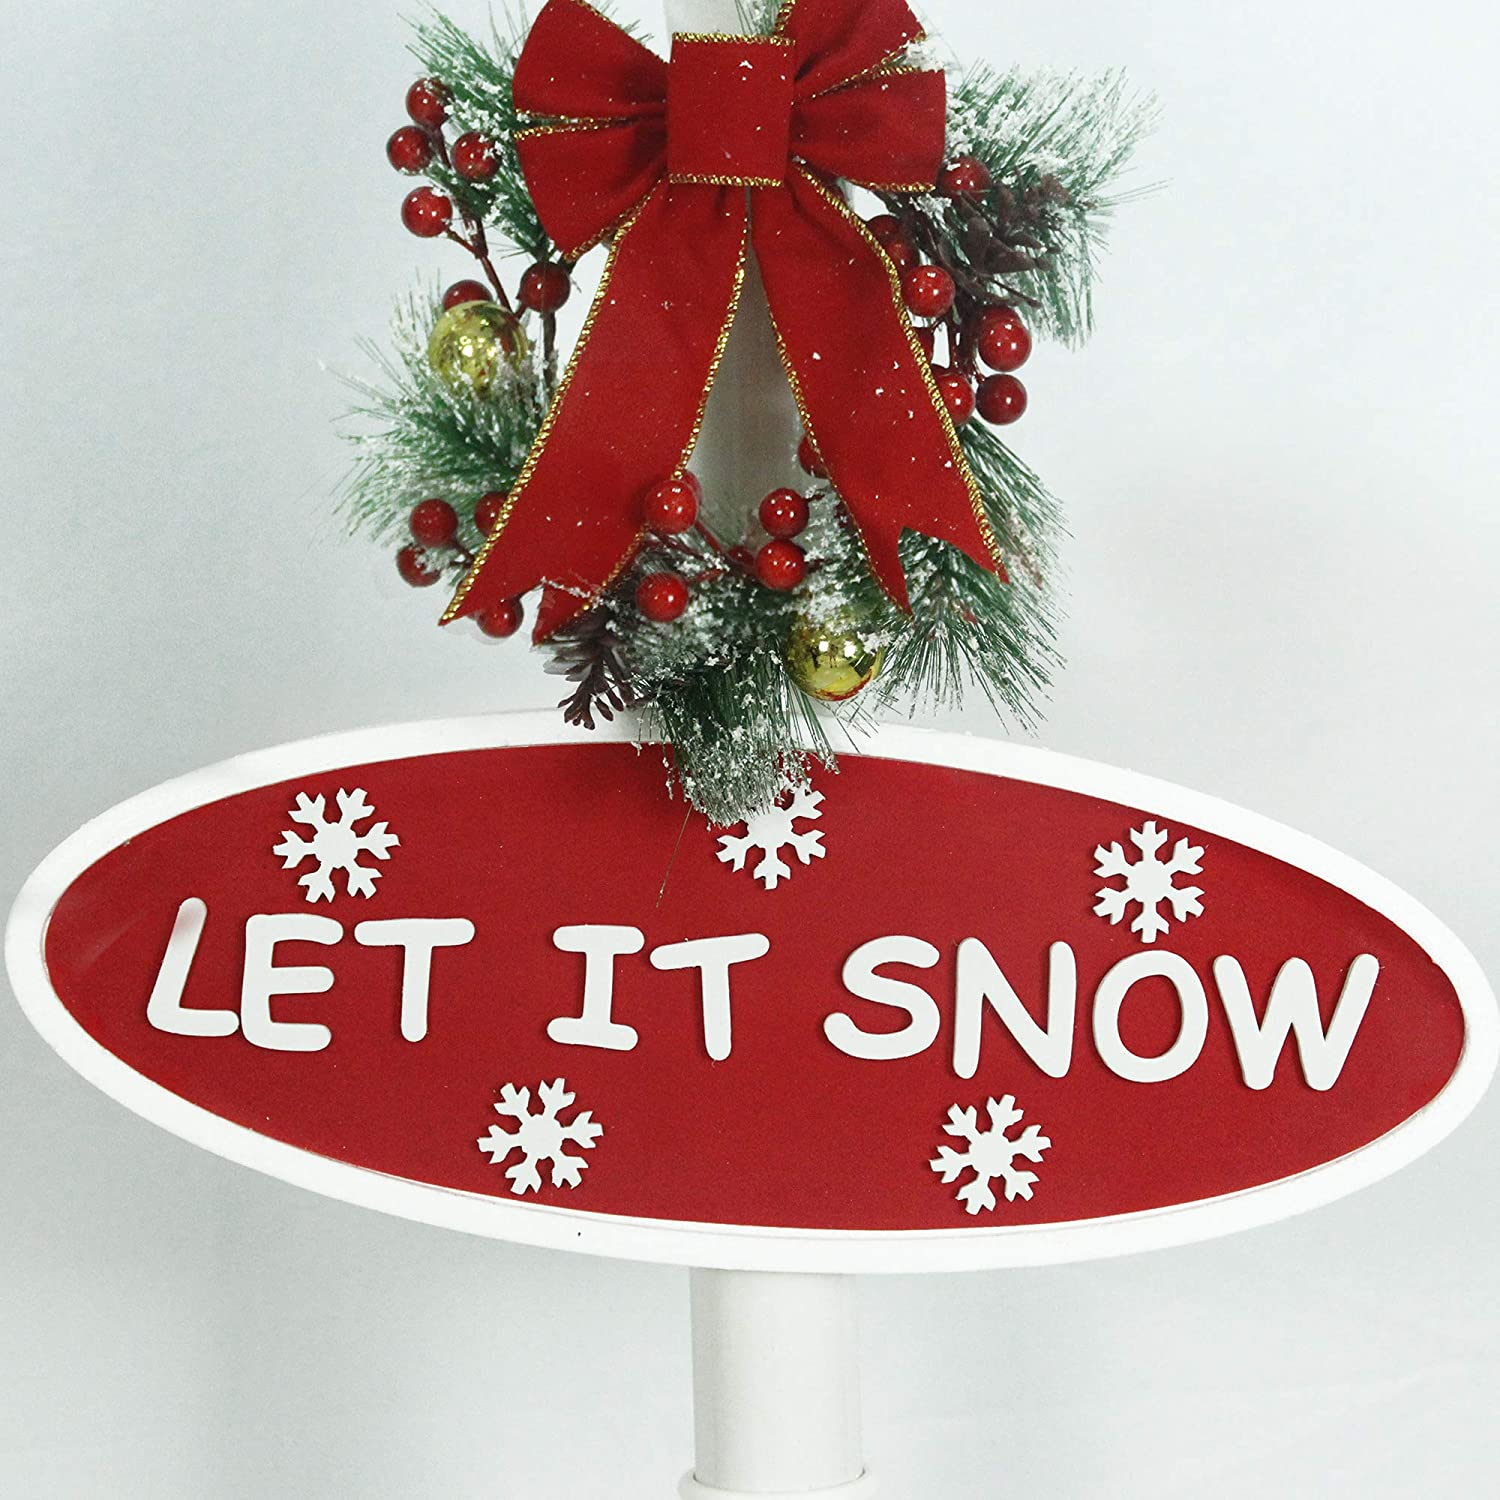 71 Inch Fraser Hill Farm Let Series 71 Street Lamp Christmas Tree Cascading Snow 2 Signs and Holiday Music Black with Trio Scene